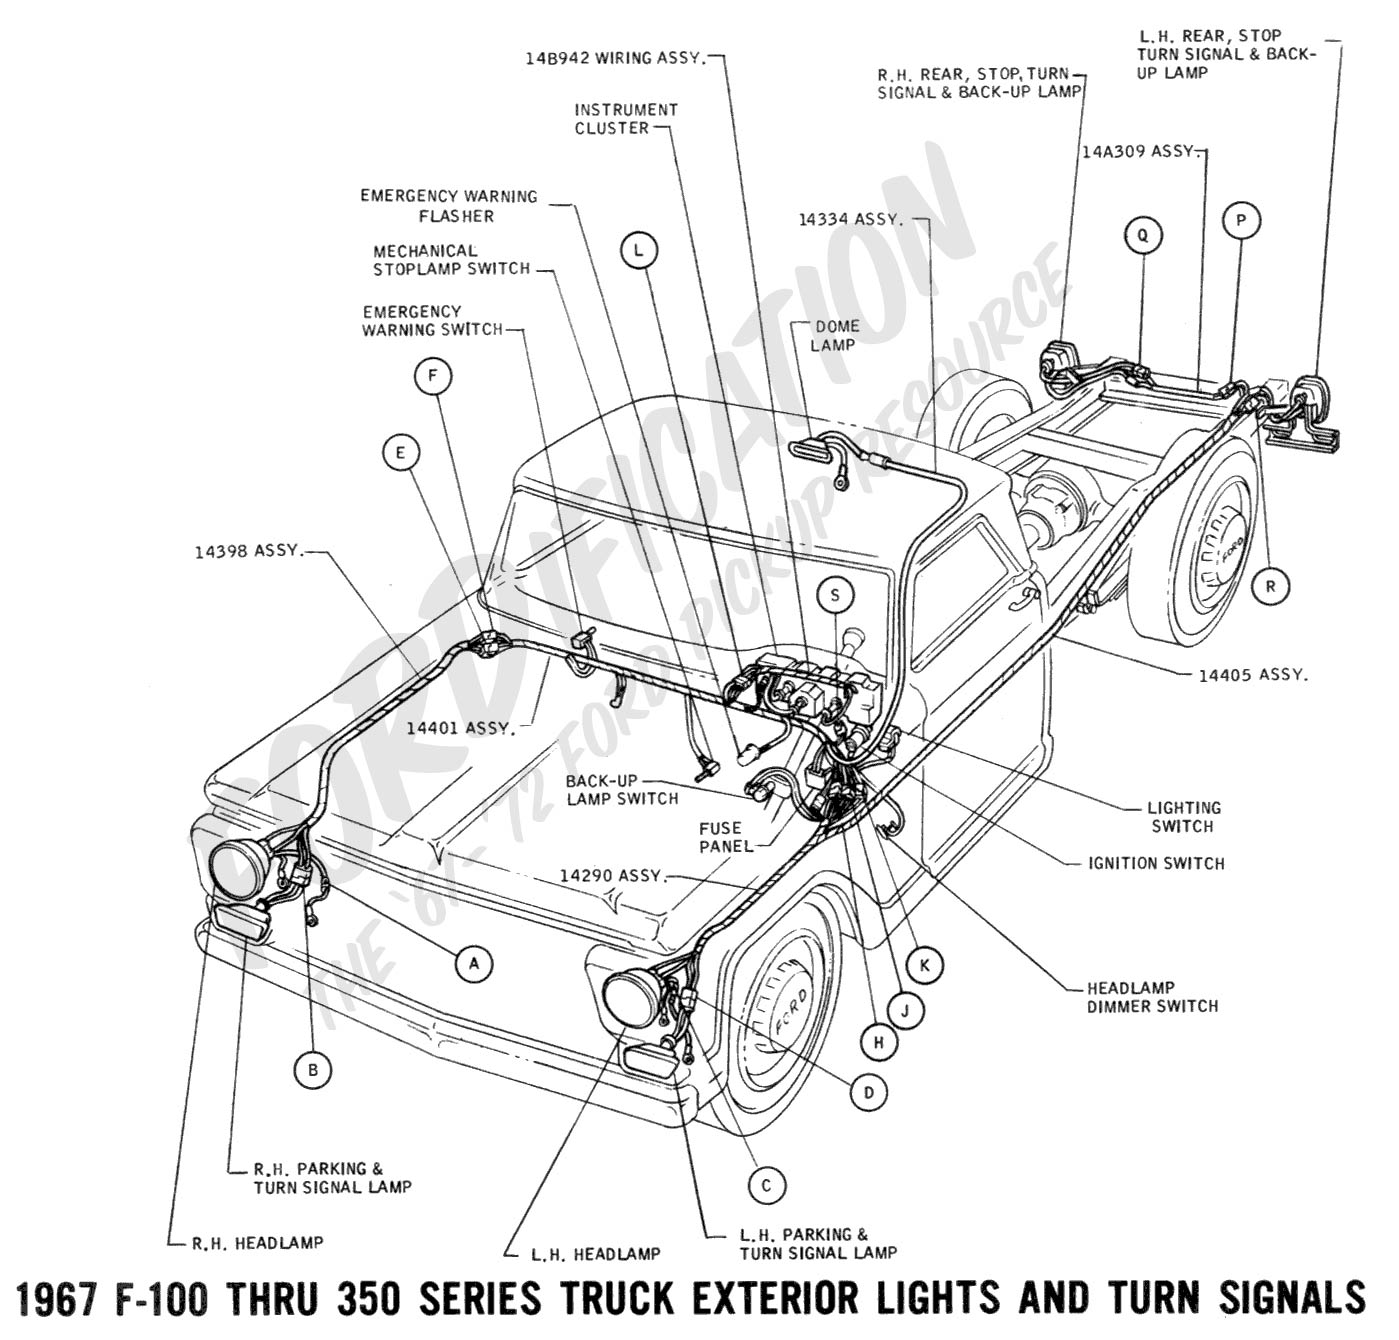 hight resolution of ford ranger fuel system diagram wiring diagram week 1996 ford ranger fuel system diagram ford ranger fuel system diagram